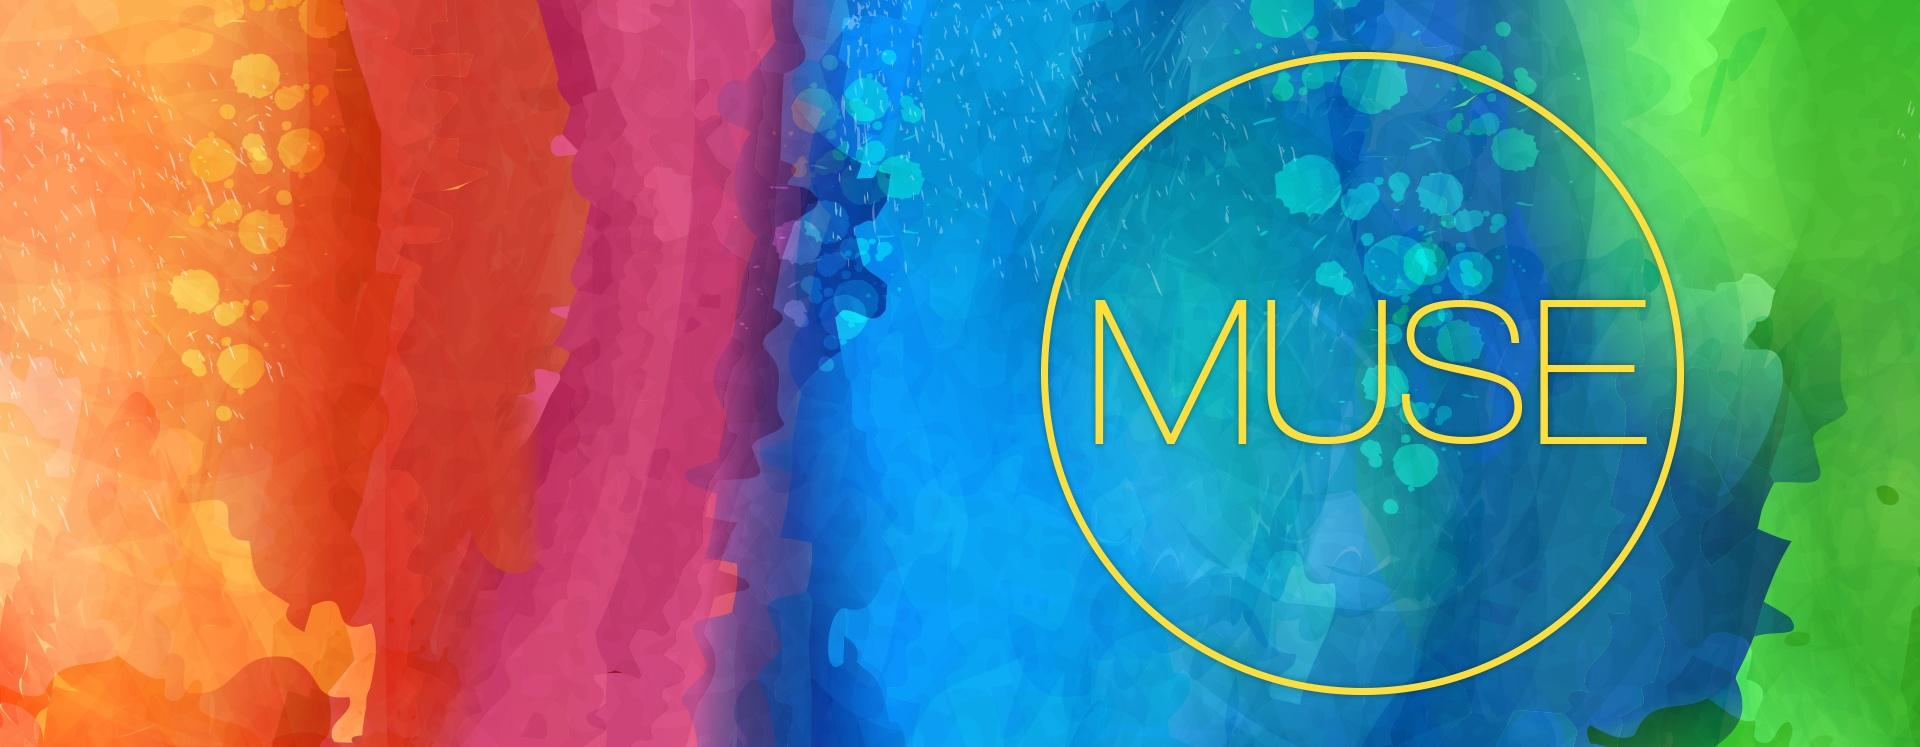 MUSE, a New Series About the Arts